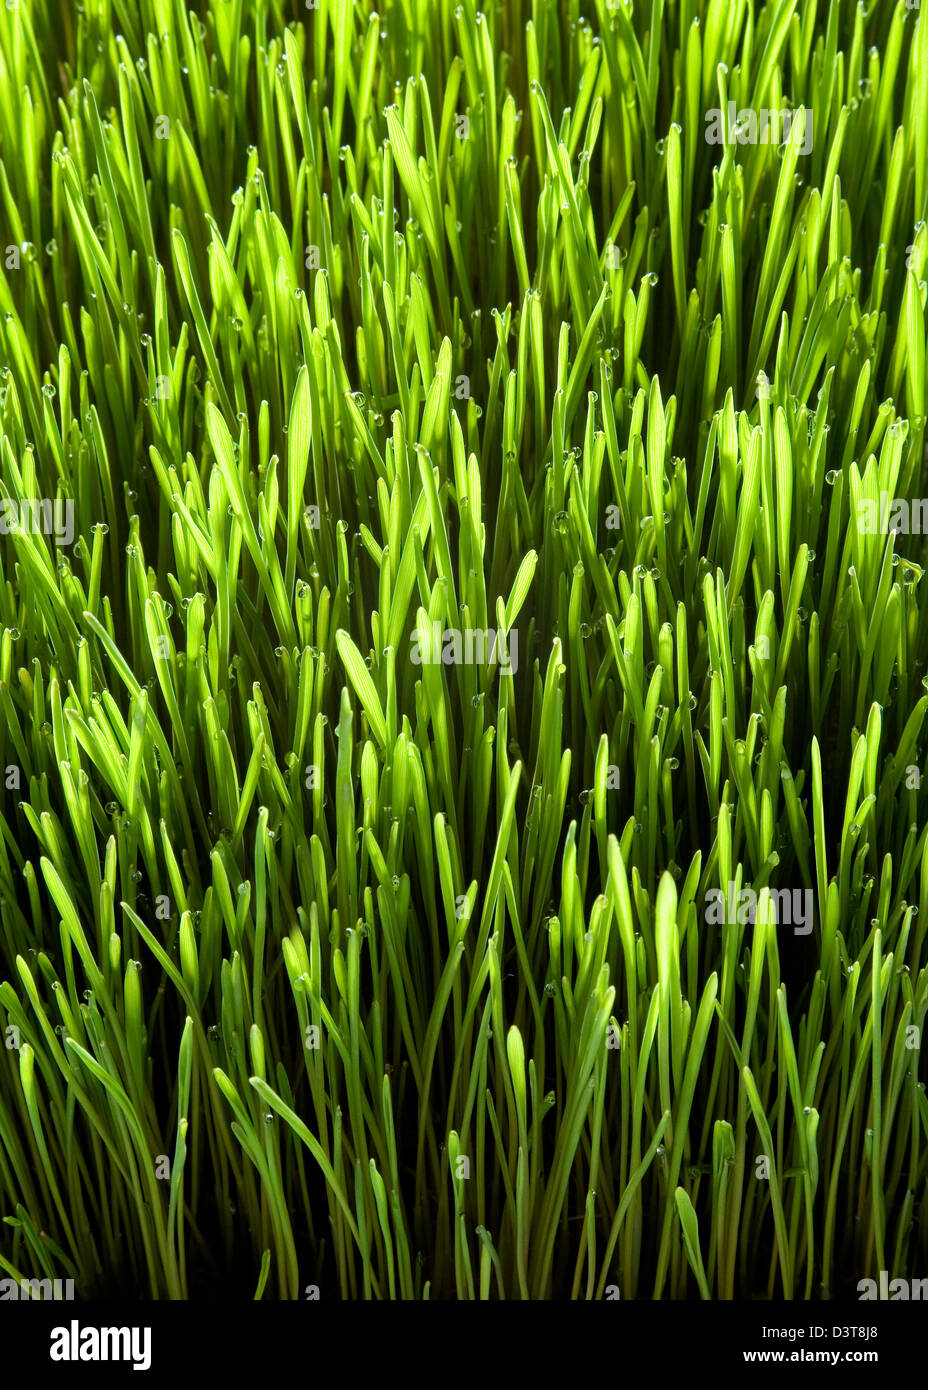 Fresh Green Wheatgrass - close up - Stock Image